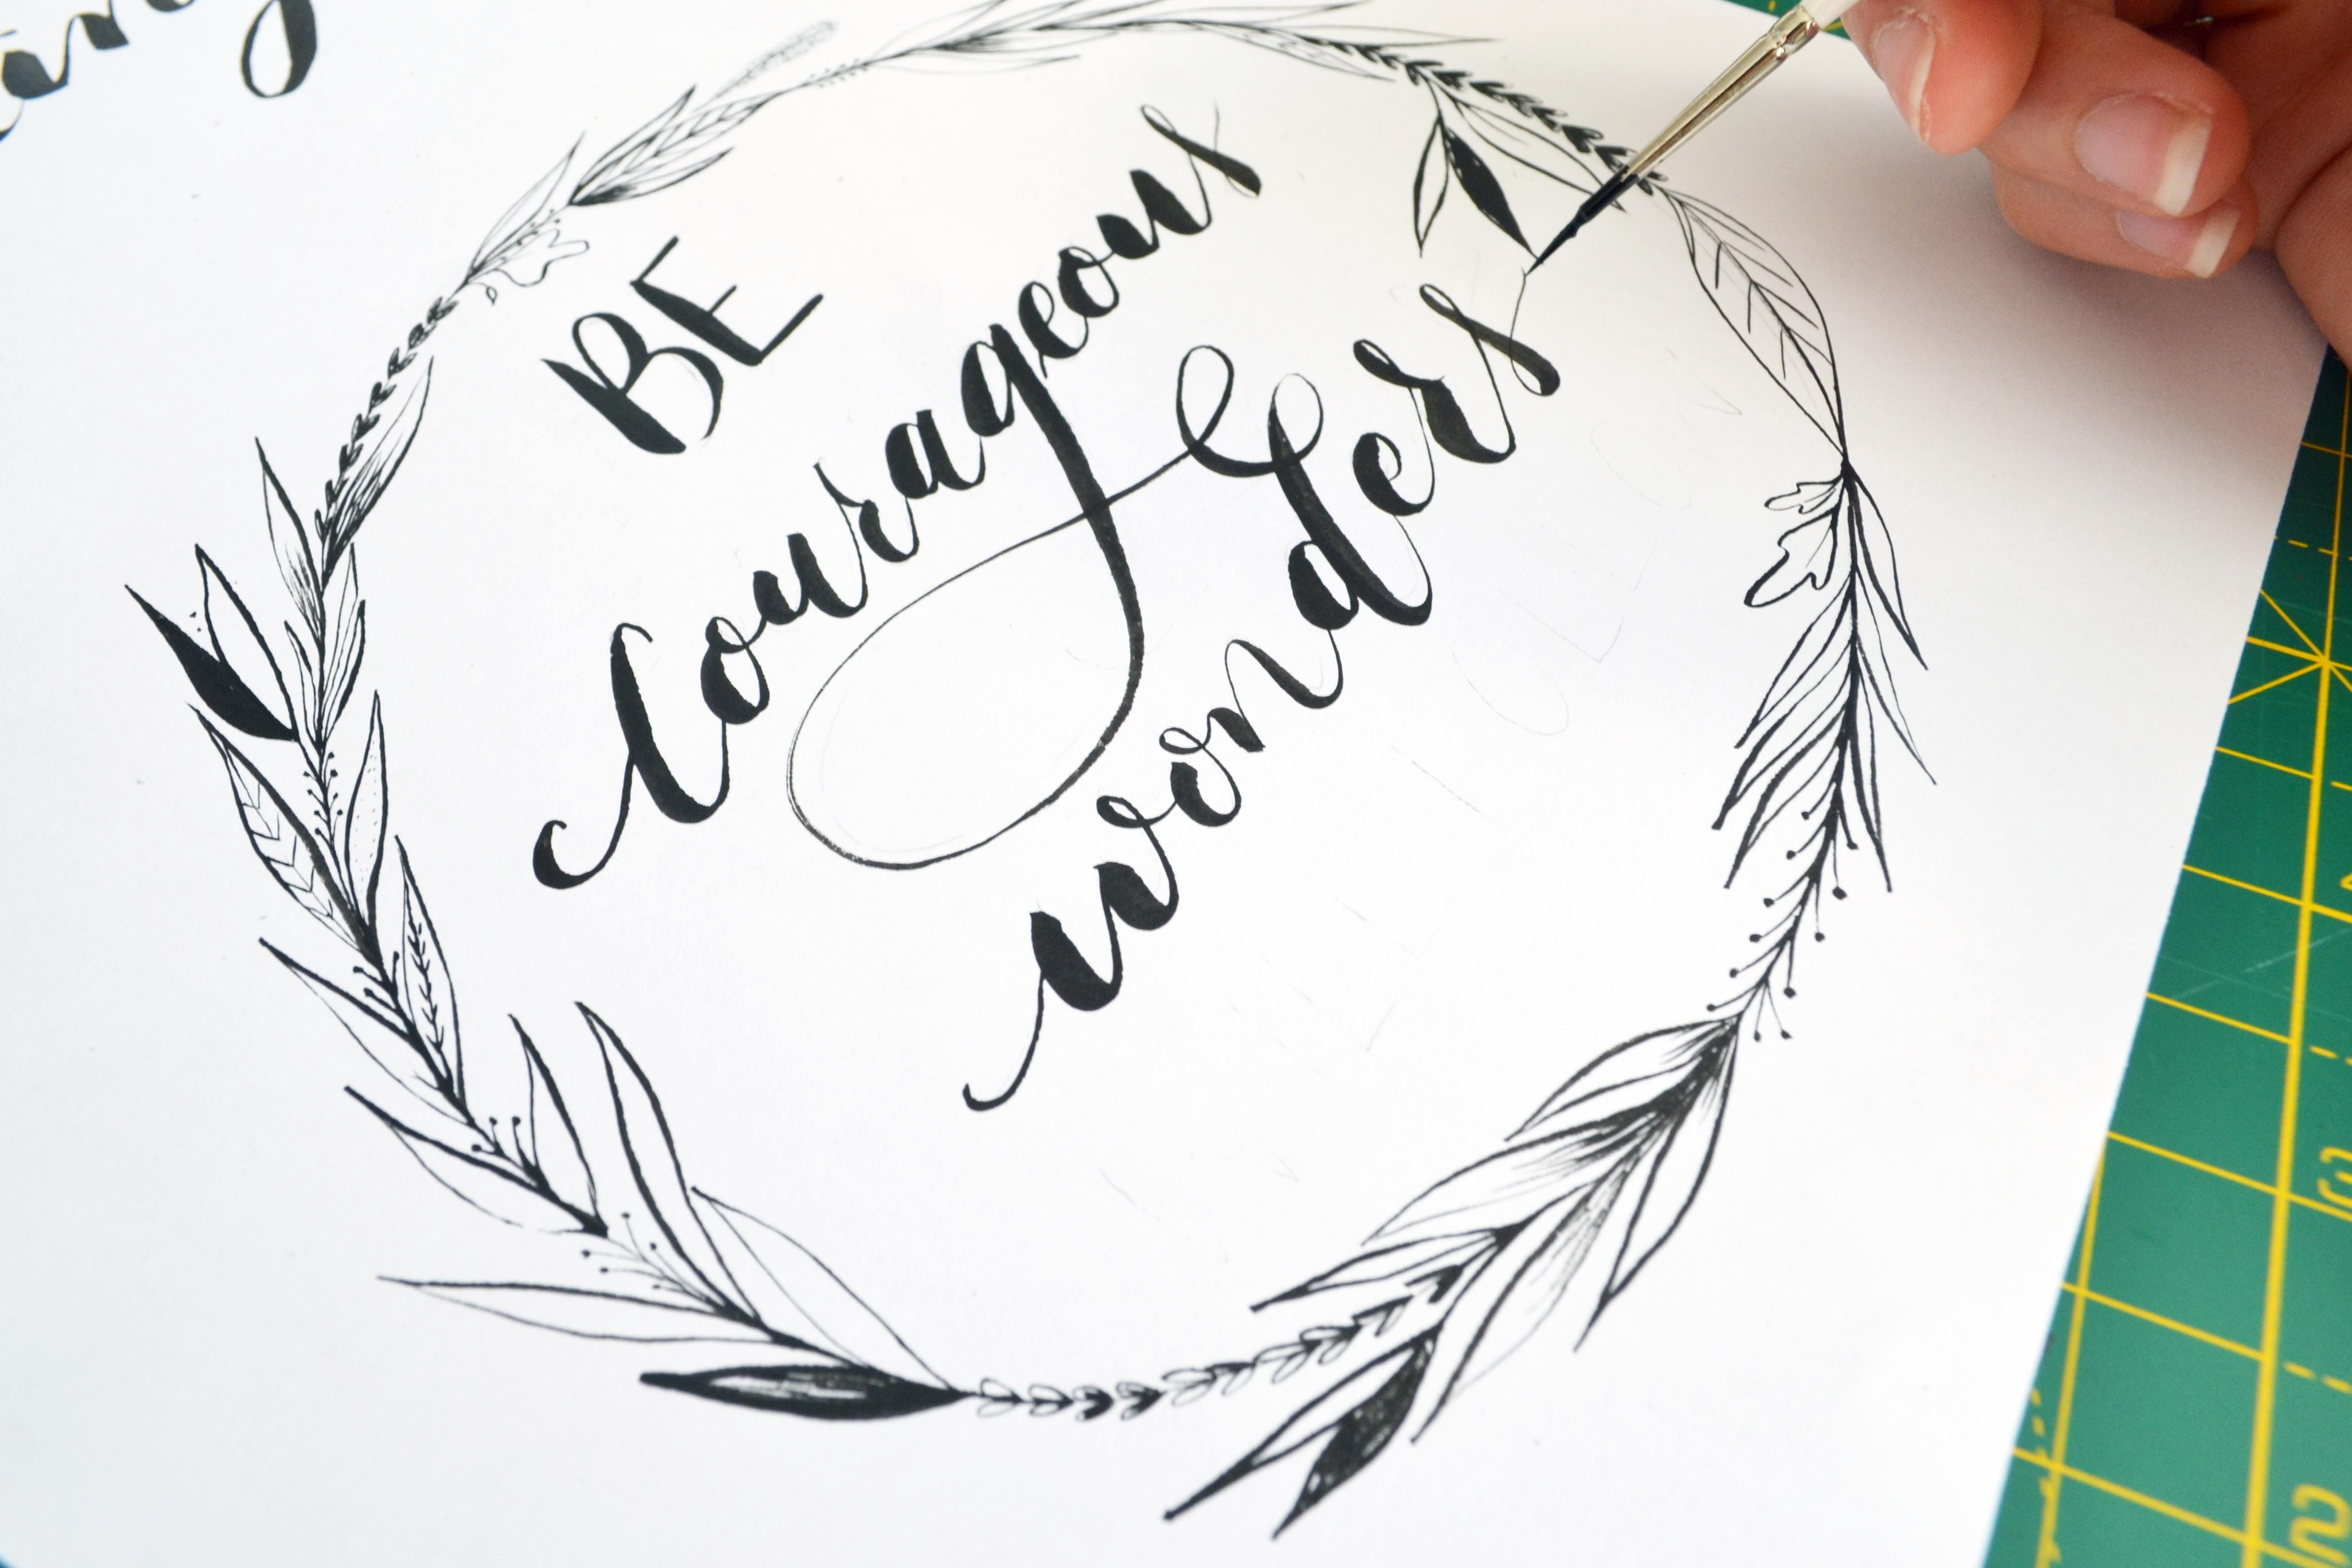 Pin by .pily. on .brush script. pinterest letters